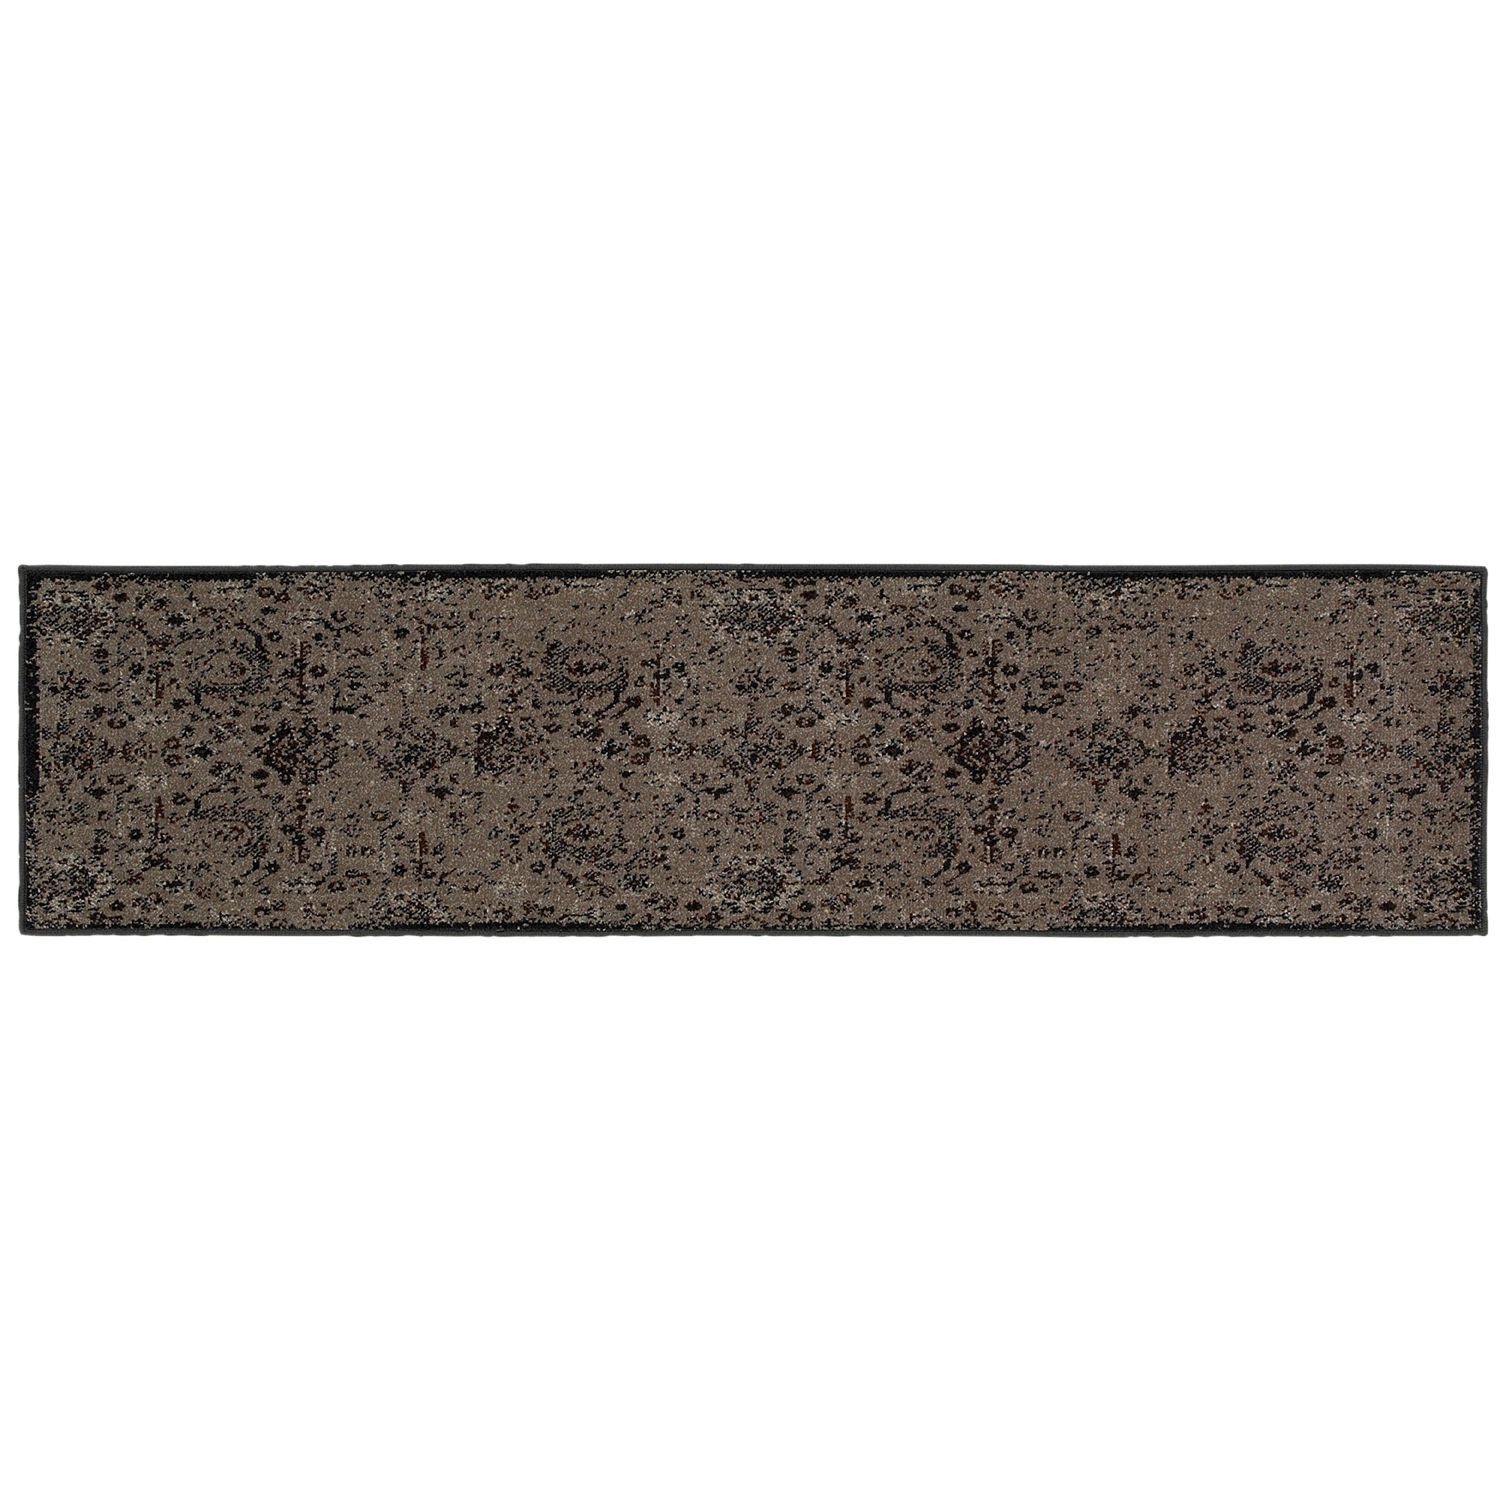 Distressed Outdoor Rugs Rugs, | Kohl\'s